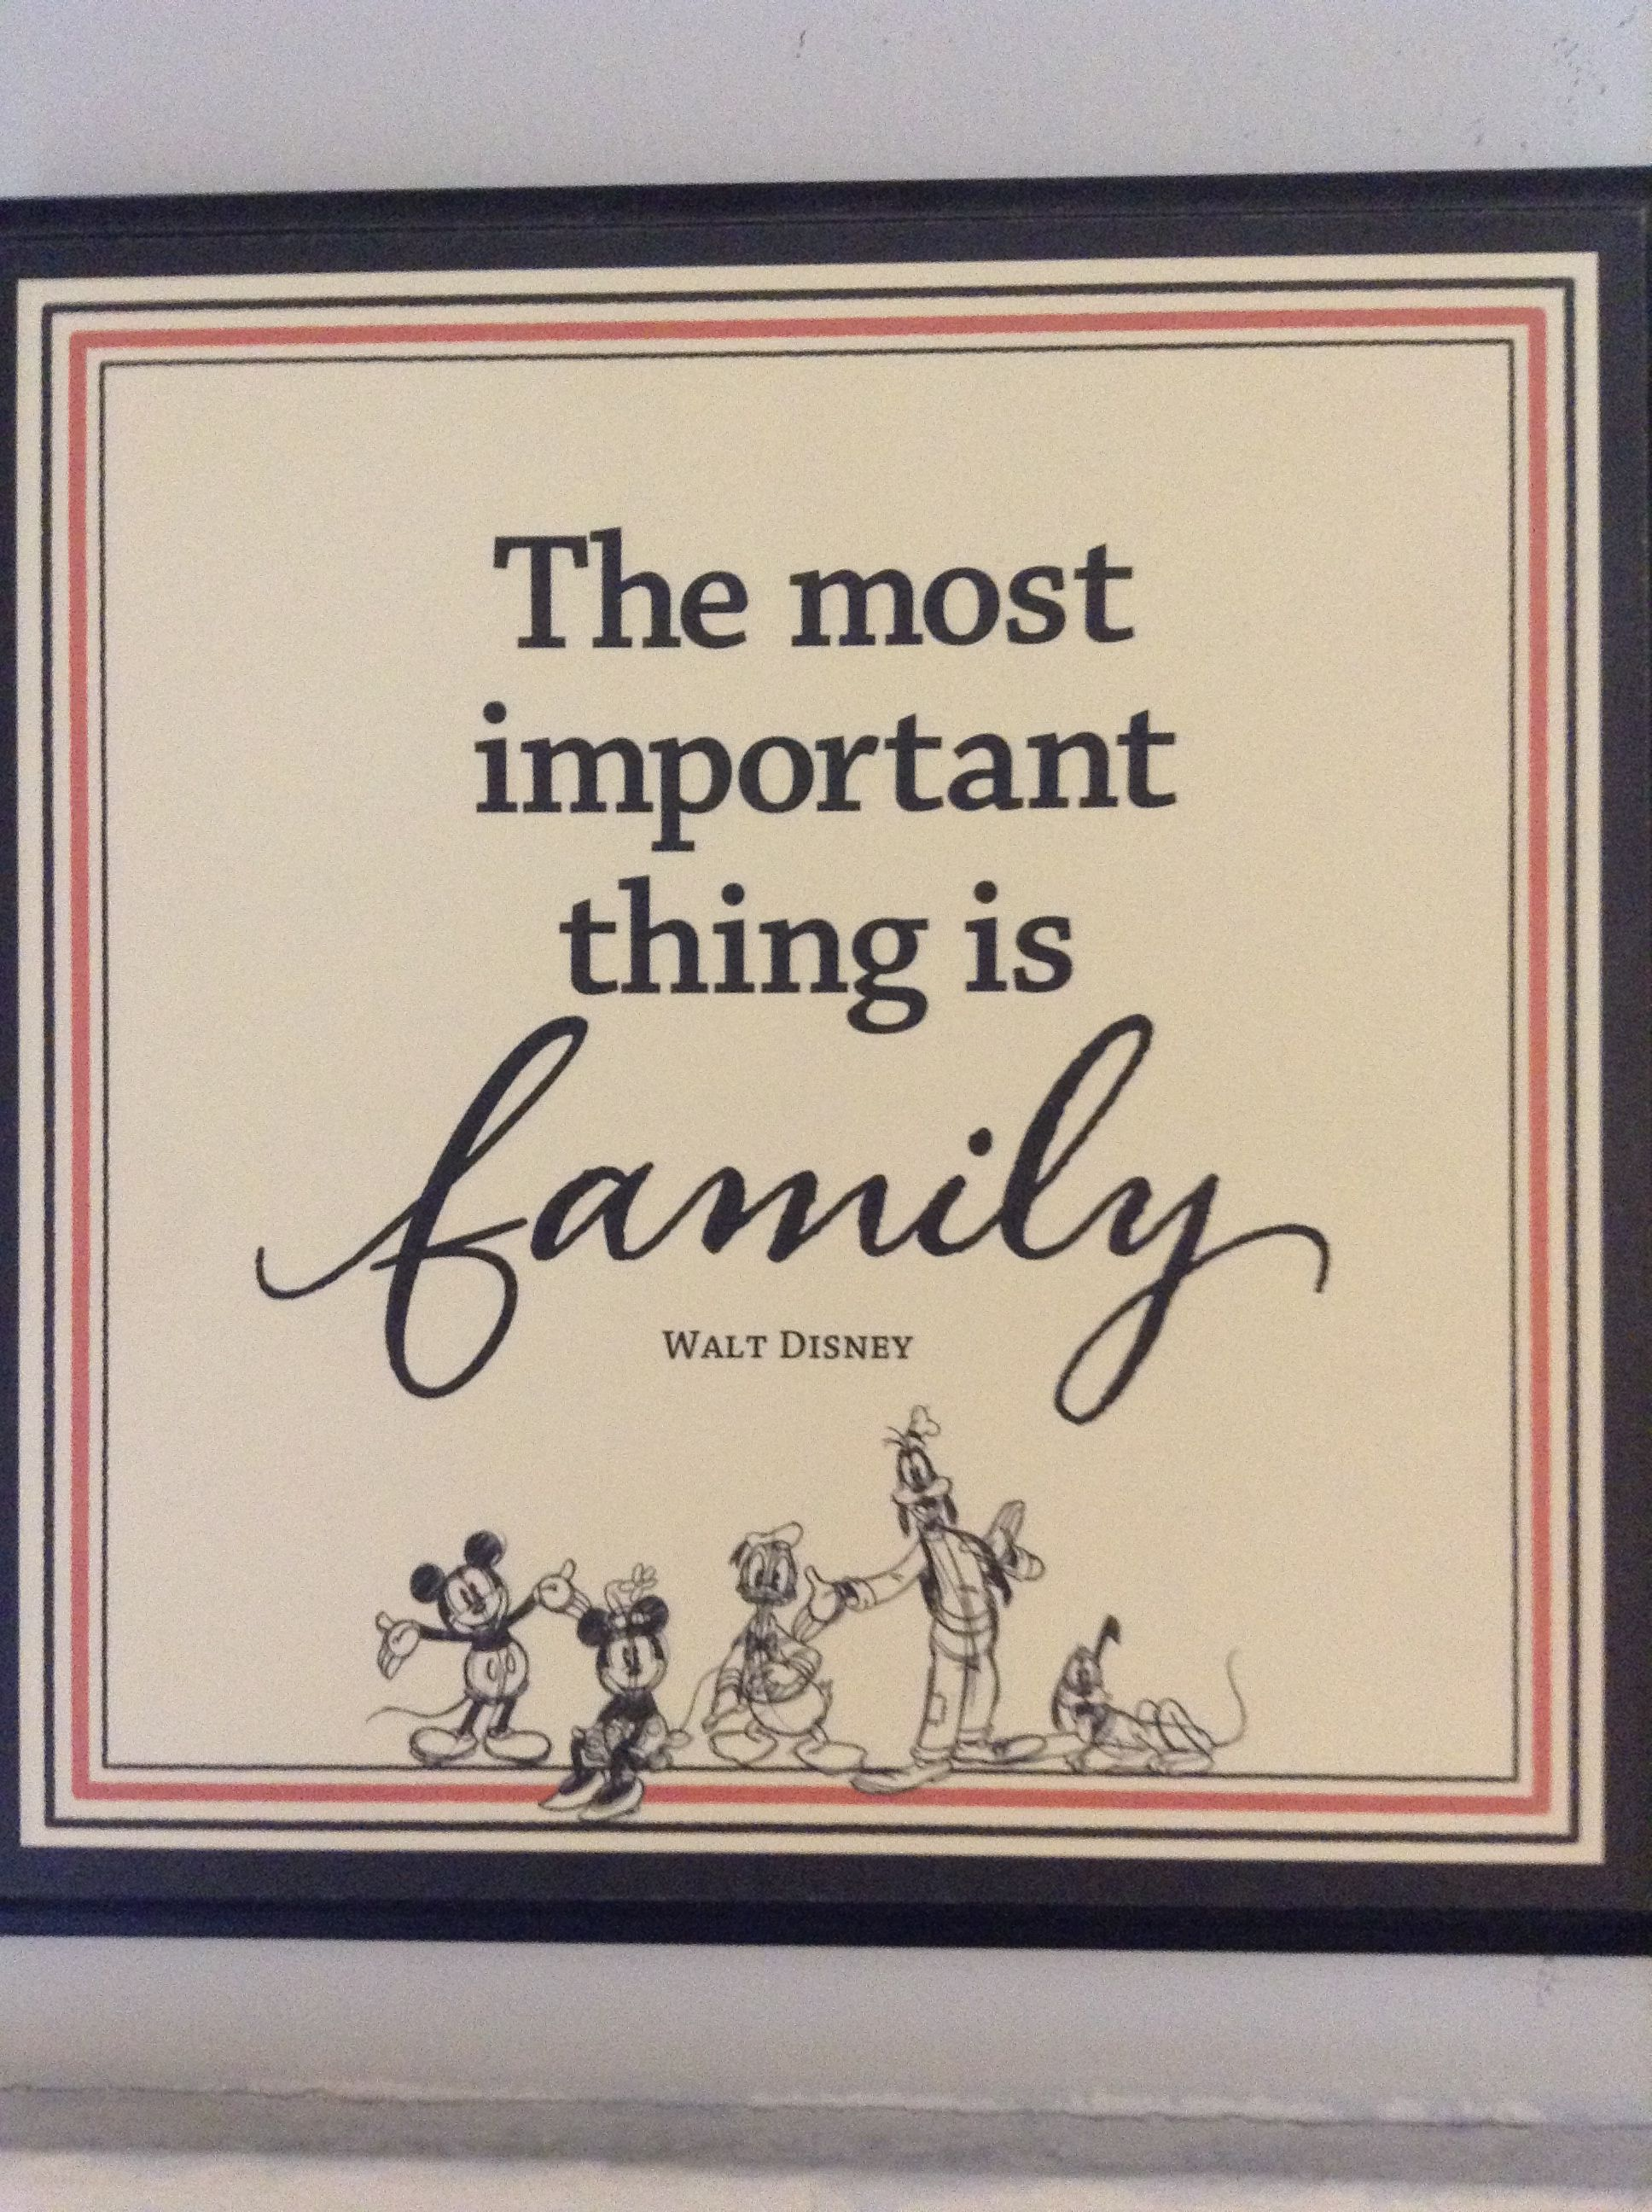 Disney Quotes About Family Walt Disney quotes   the most important thing is family. I like  Disney Quotes About Family